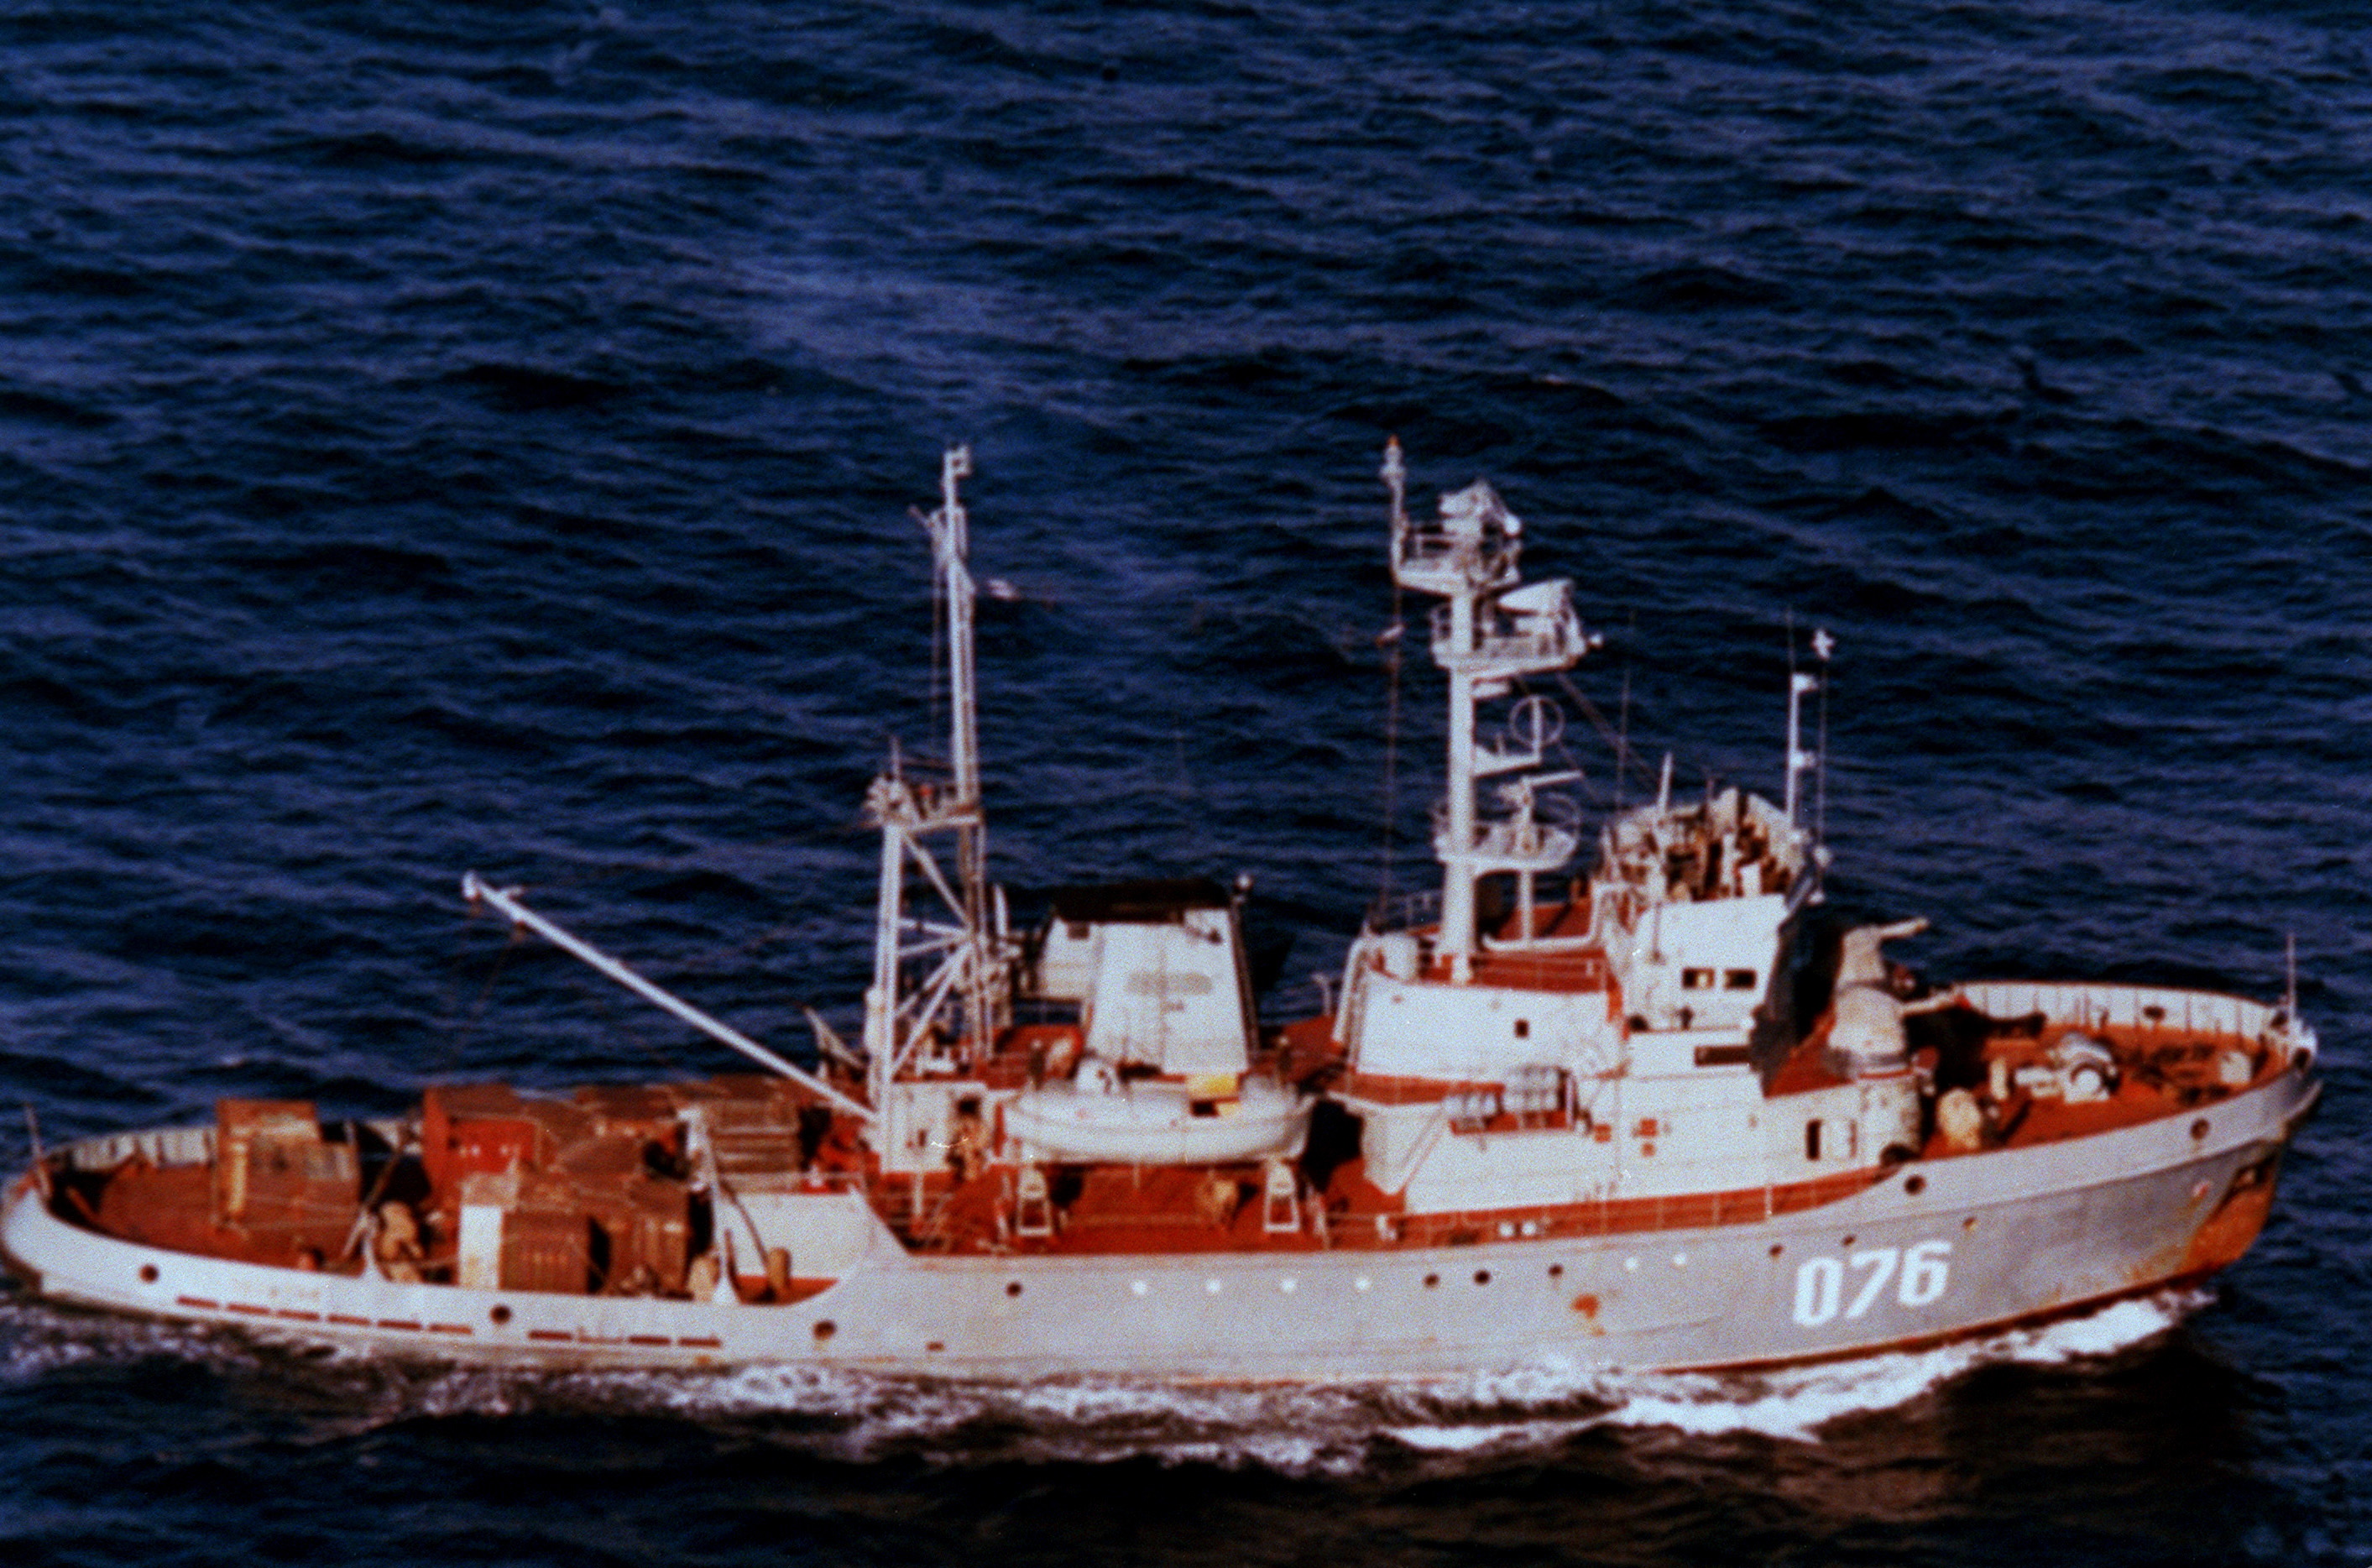 Aerial starboard side view of the Russian Maritime Border Guard Pacific region Sorum class patrol/armed tug CHUKHOTKA (#076) underway. (Exact date shot unknown)